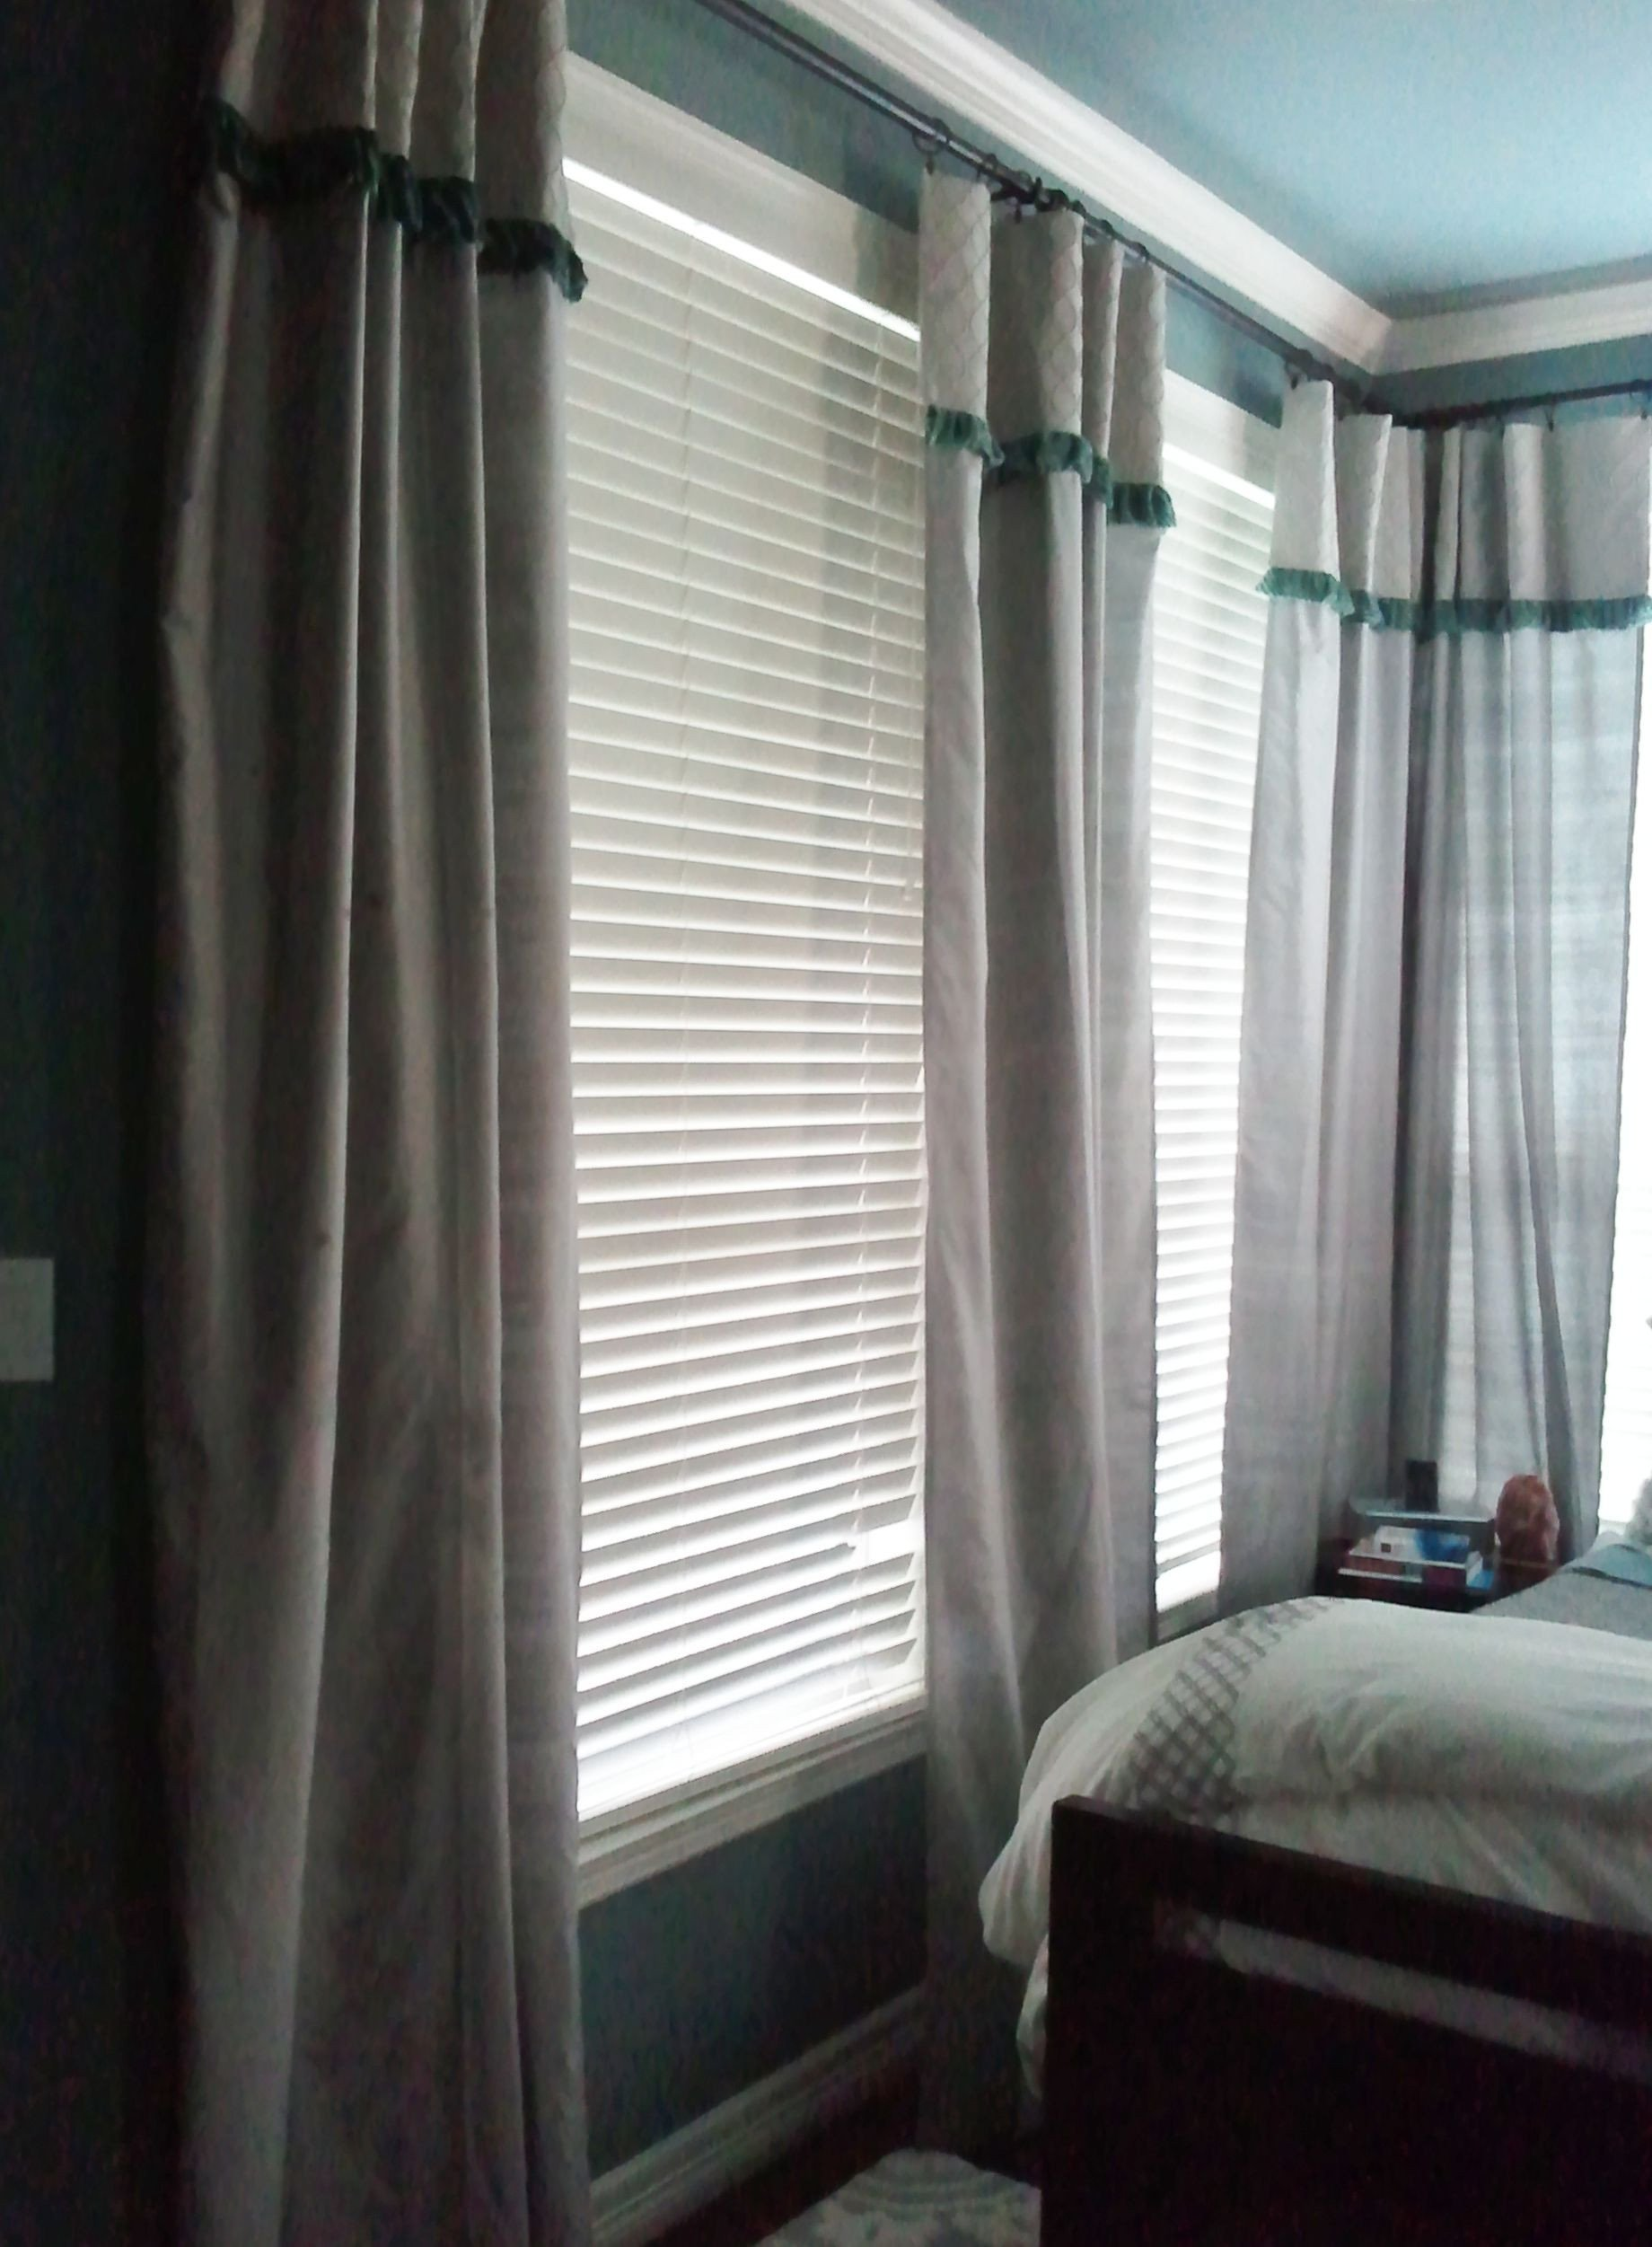 Best Curtains for Bedroom Best Of How to Lengthen Store Bought Drapes Rfect for My 1920 S